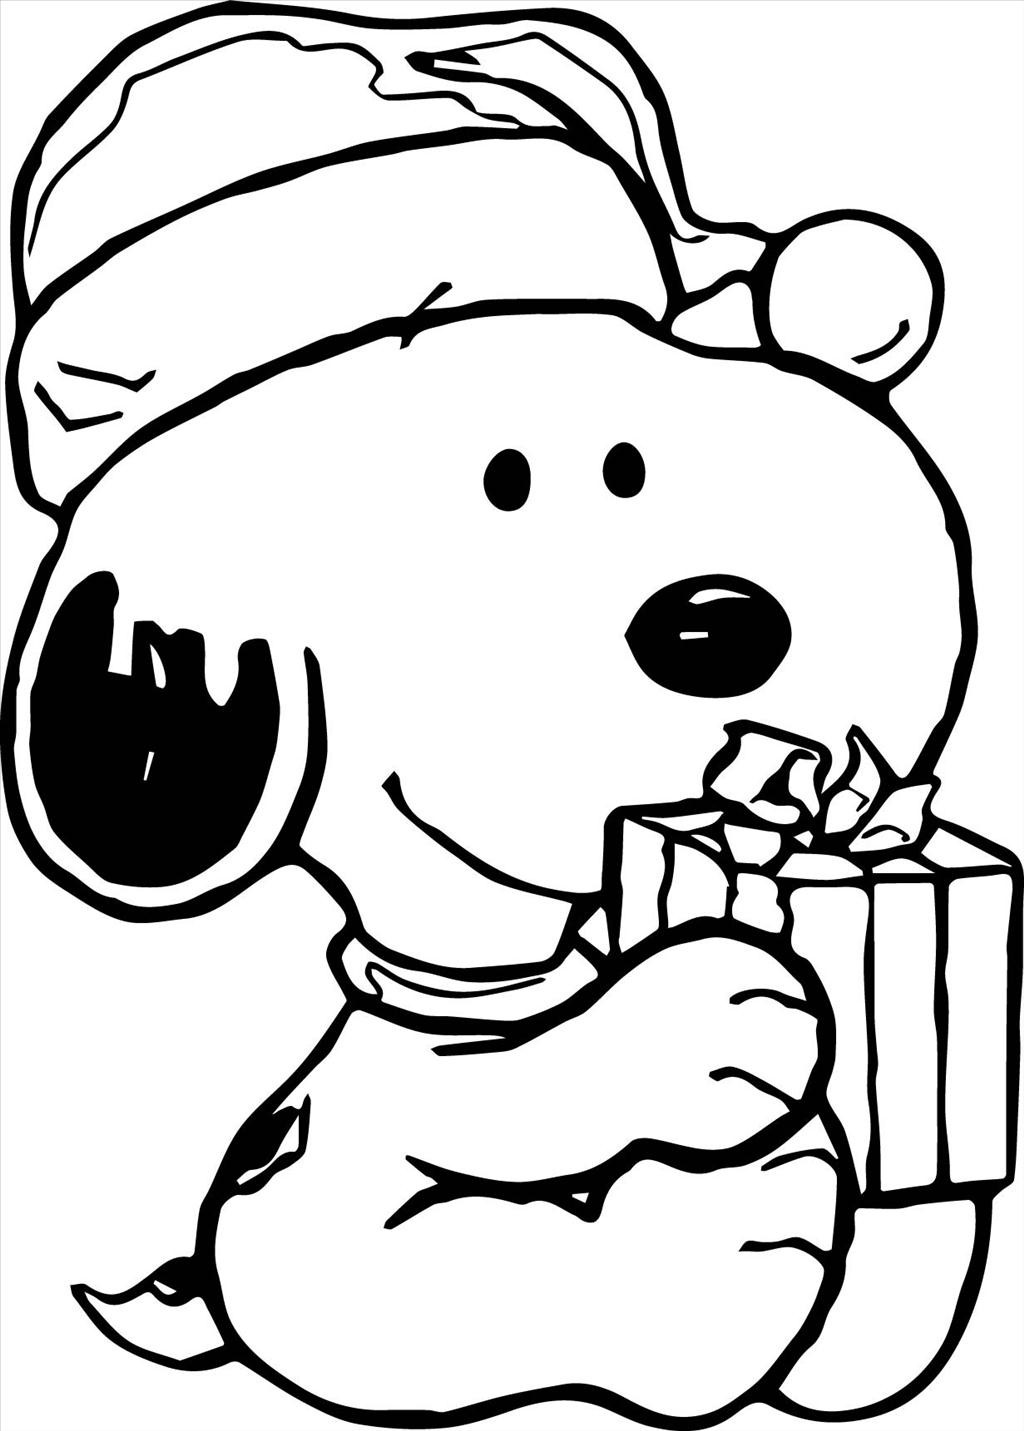 snoopy coloring pages printable snoopy coloring pages for kids cool2bkids snoopy pages coloring